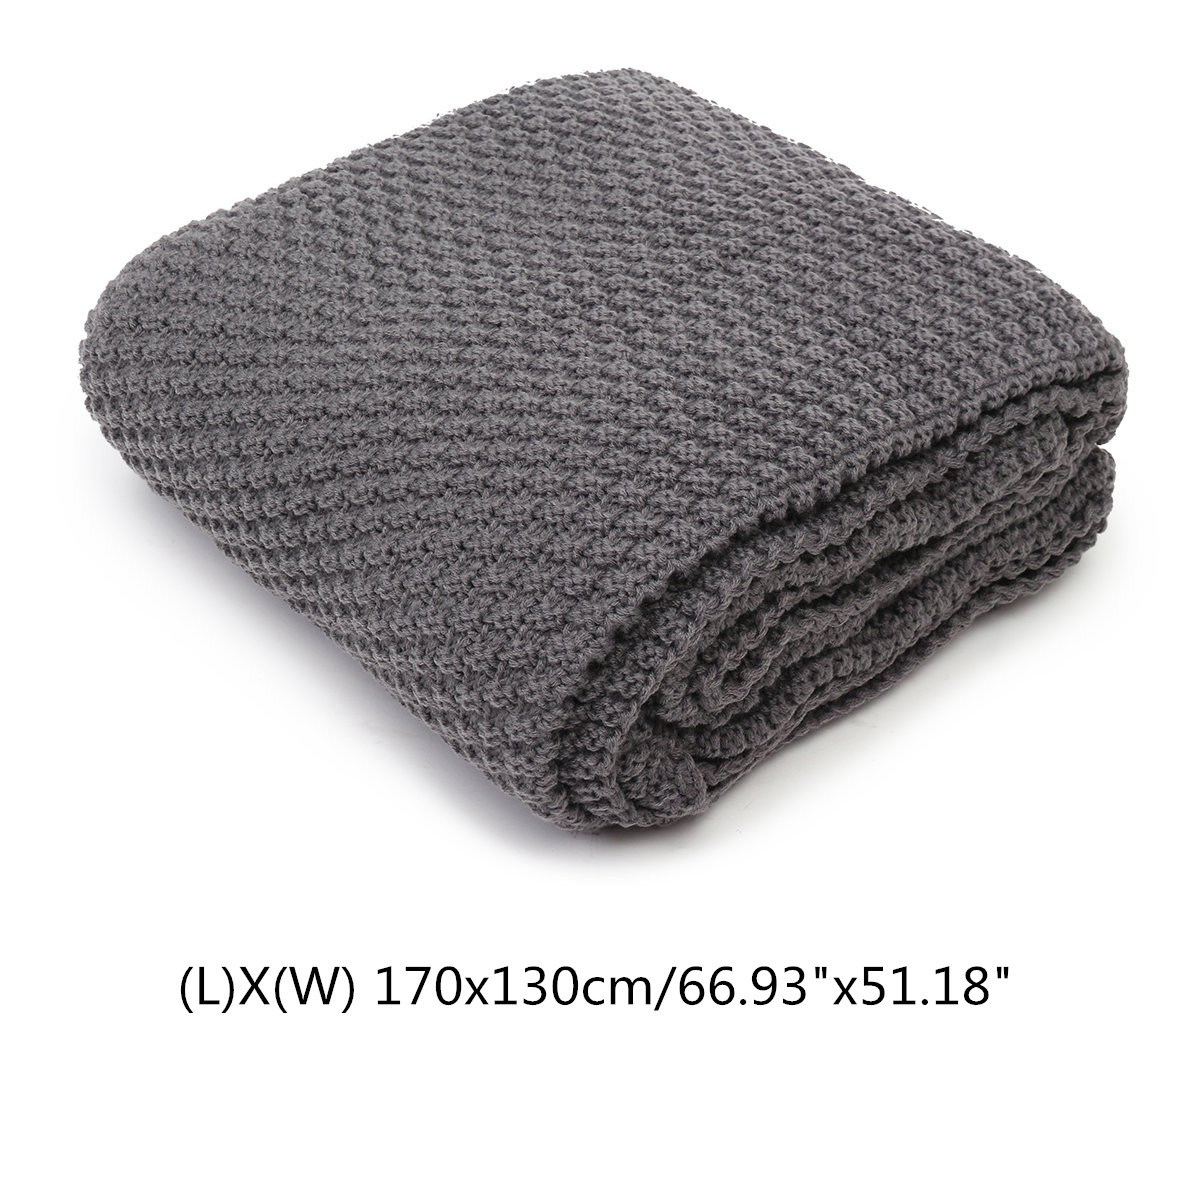 Cotton Knit Throw Blankets Soft Warm Cable Knitted Throw Sofa Bed Home Decor